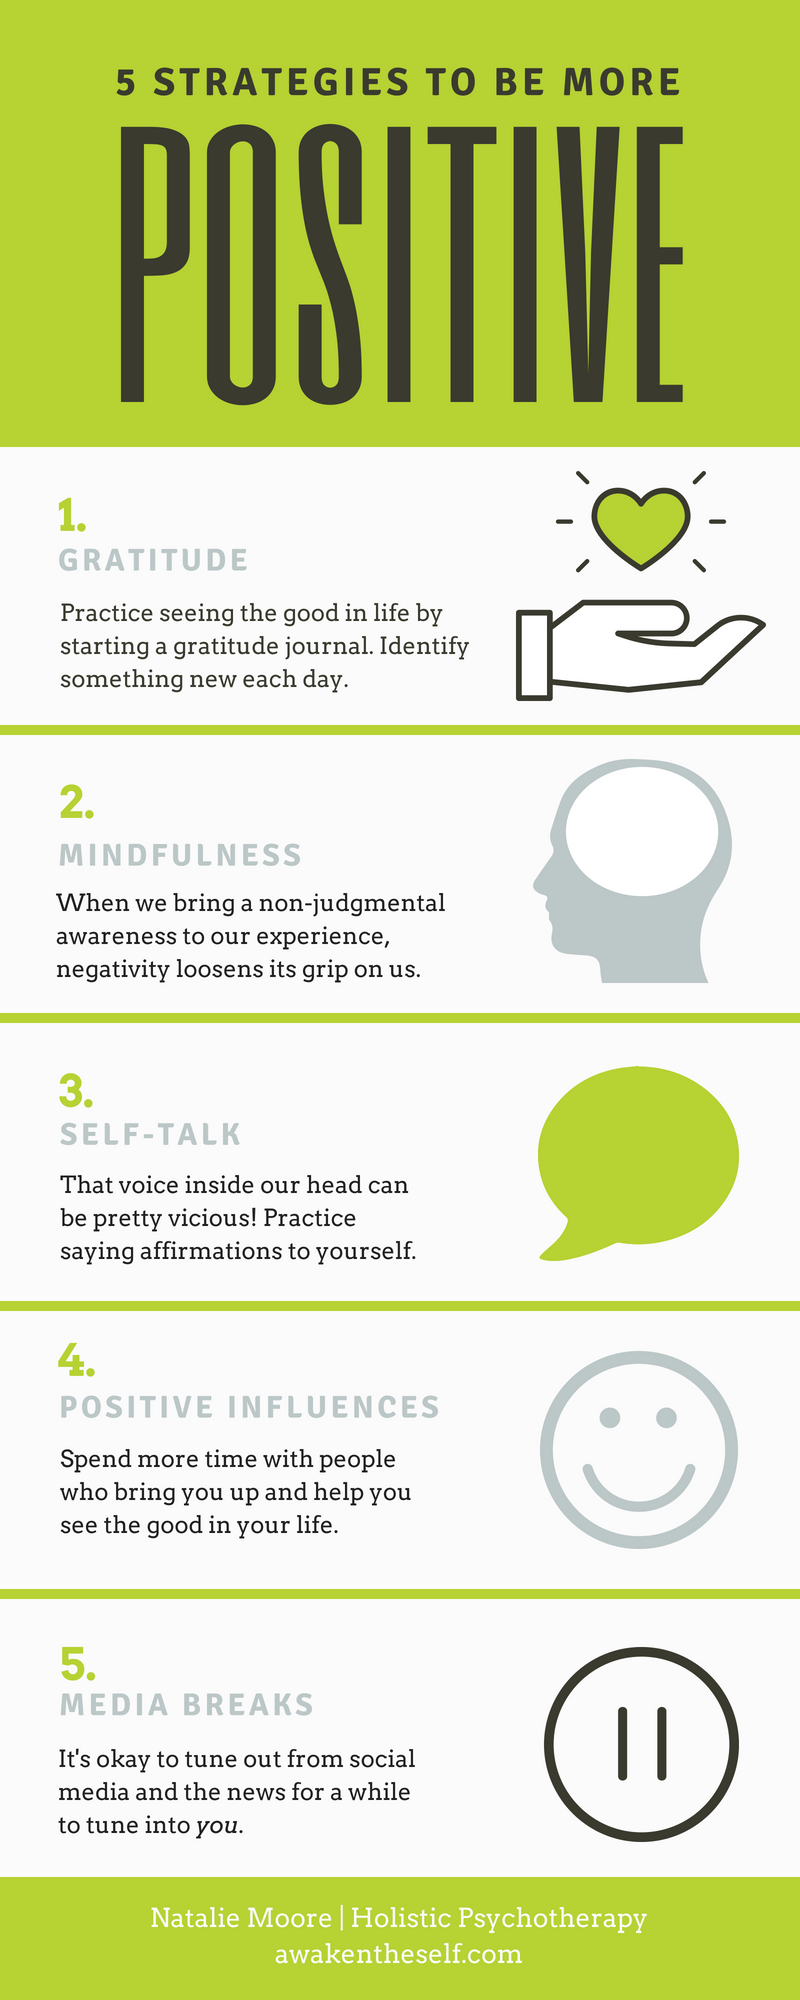 5 Strategies for How to be More Positive [with Infographic] — Articles  About Mental Wellness for Young Adults — Holistic Psychotherapy in Pasadena  and Online